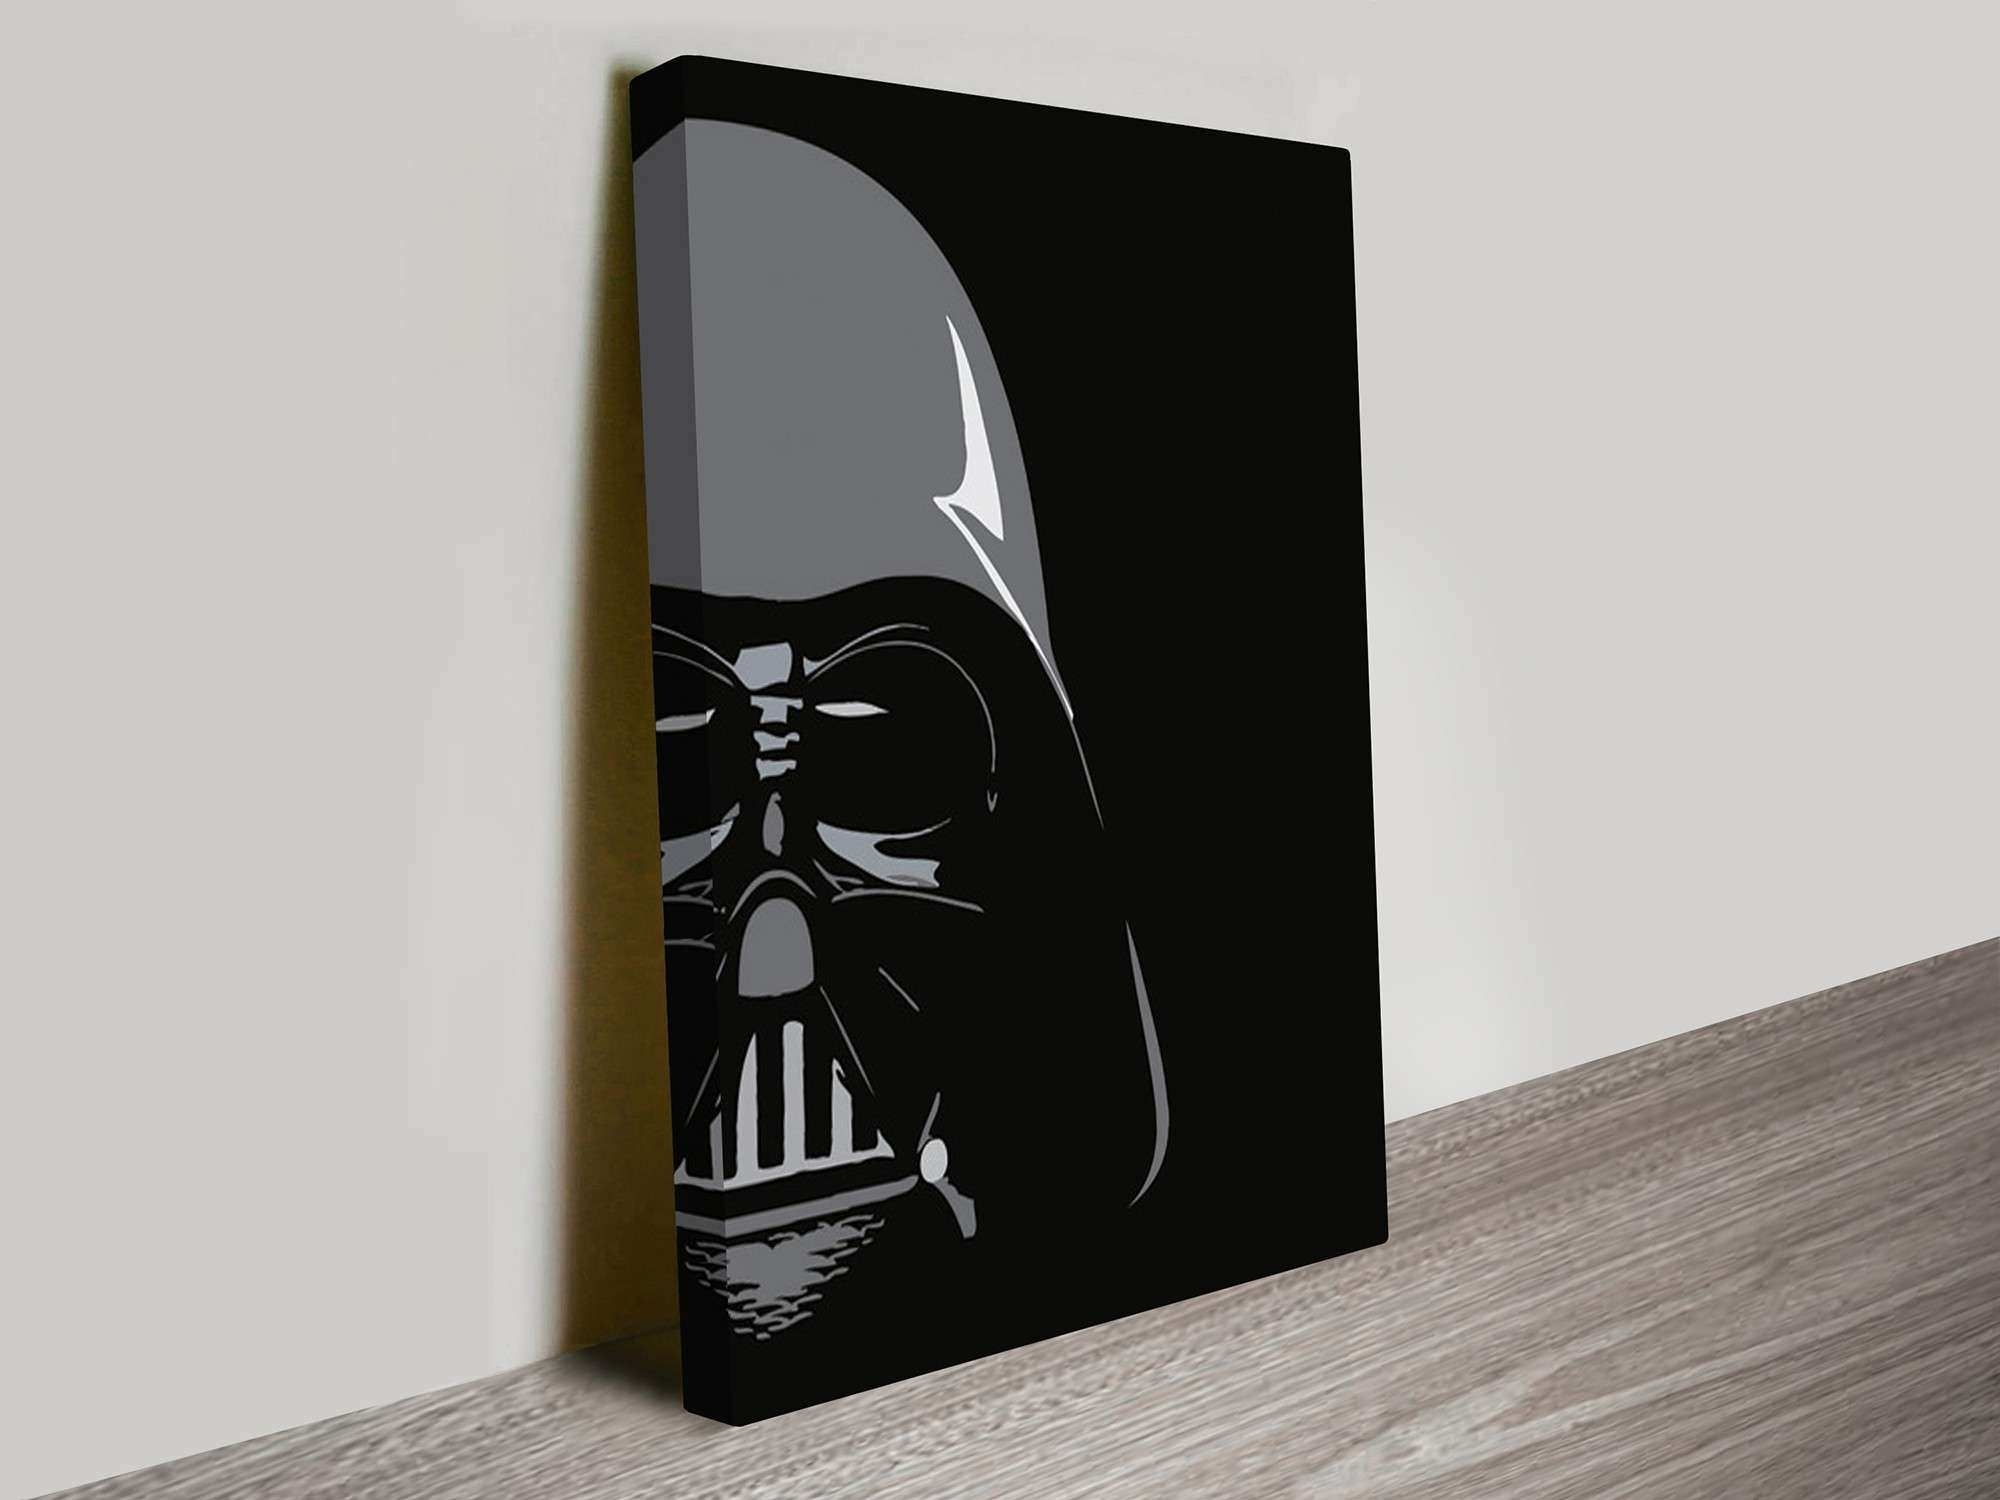 Well Known Darth Vader Wall Art Throughout Star Wars Canvas Wall Art Unique Darth Vader Pop Art Canvas Prints (View 20 of 20)